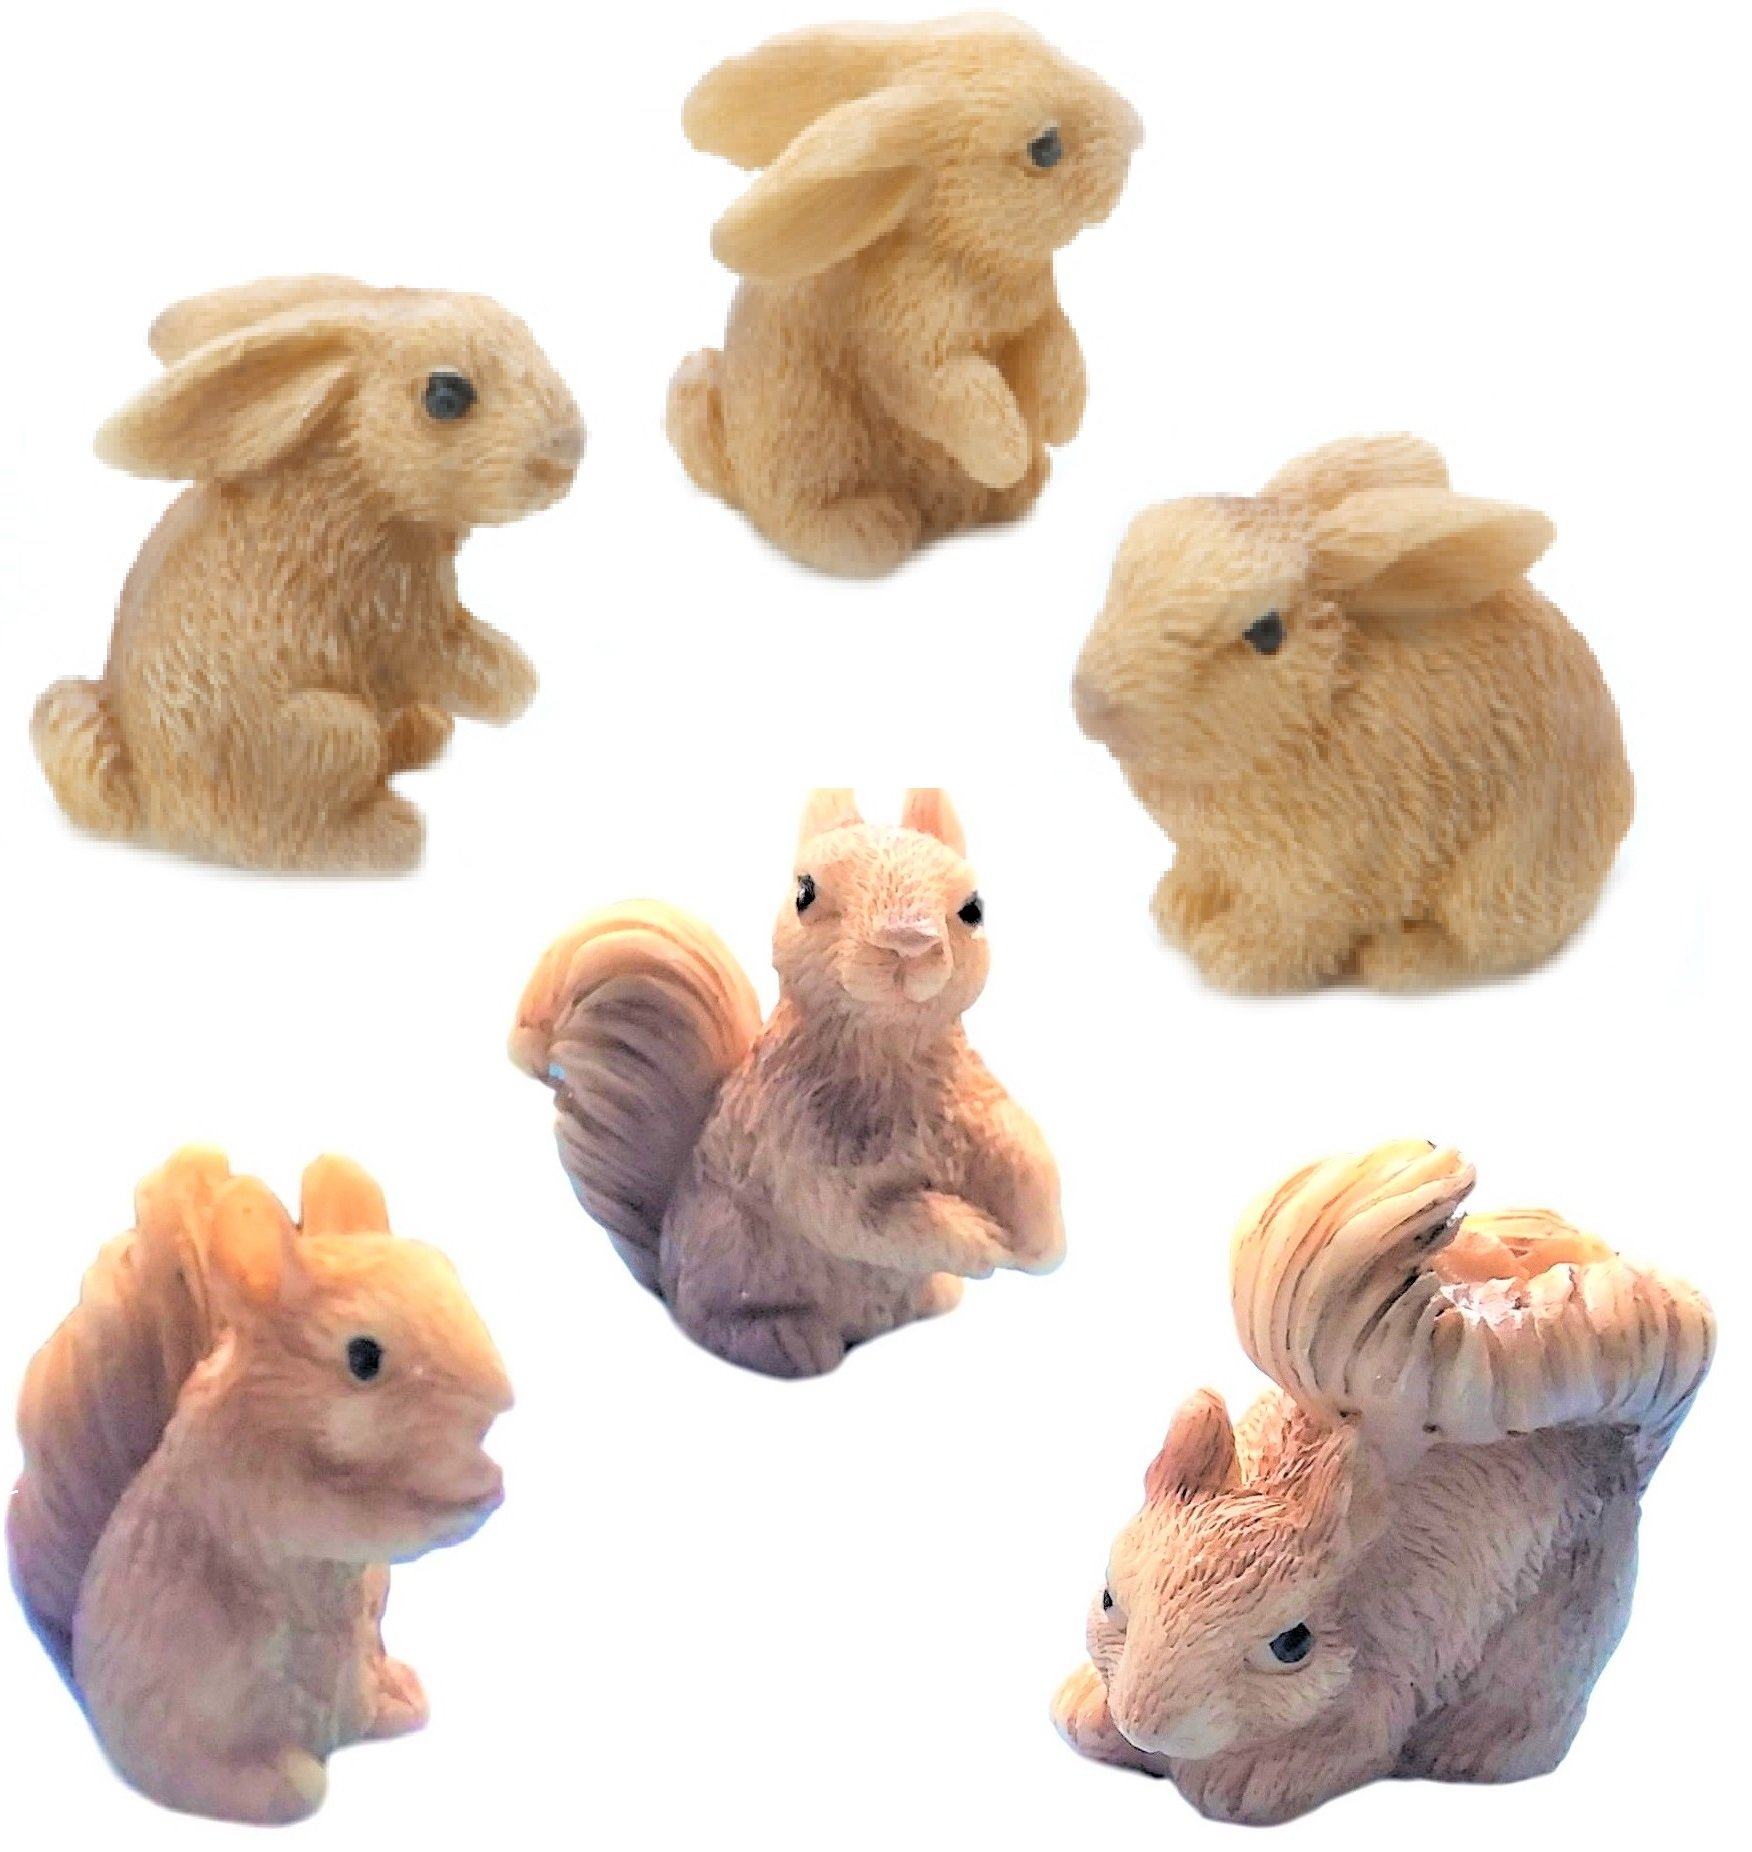 Miniature Fairy Garden Realistic Tiny 1'' x 1'' x1'' Bunny Rabbits and 1.2'' x 1'' x 0.70'' Squirrels - Made of Resin - For Outdoor or House Decor - Bundle of 6 Mini Garden Animals - Farm Woodland Creatures